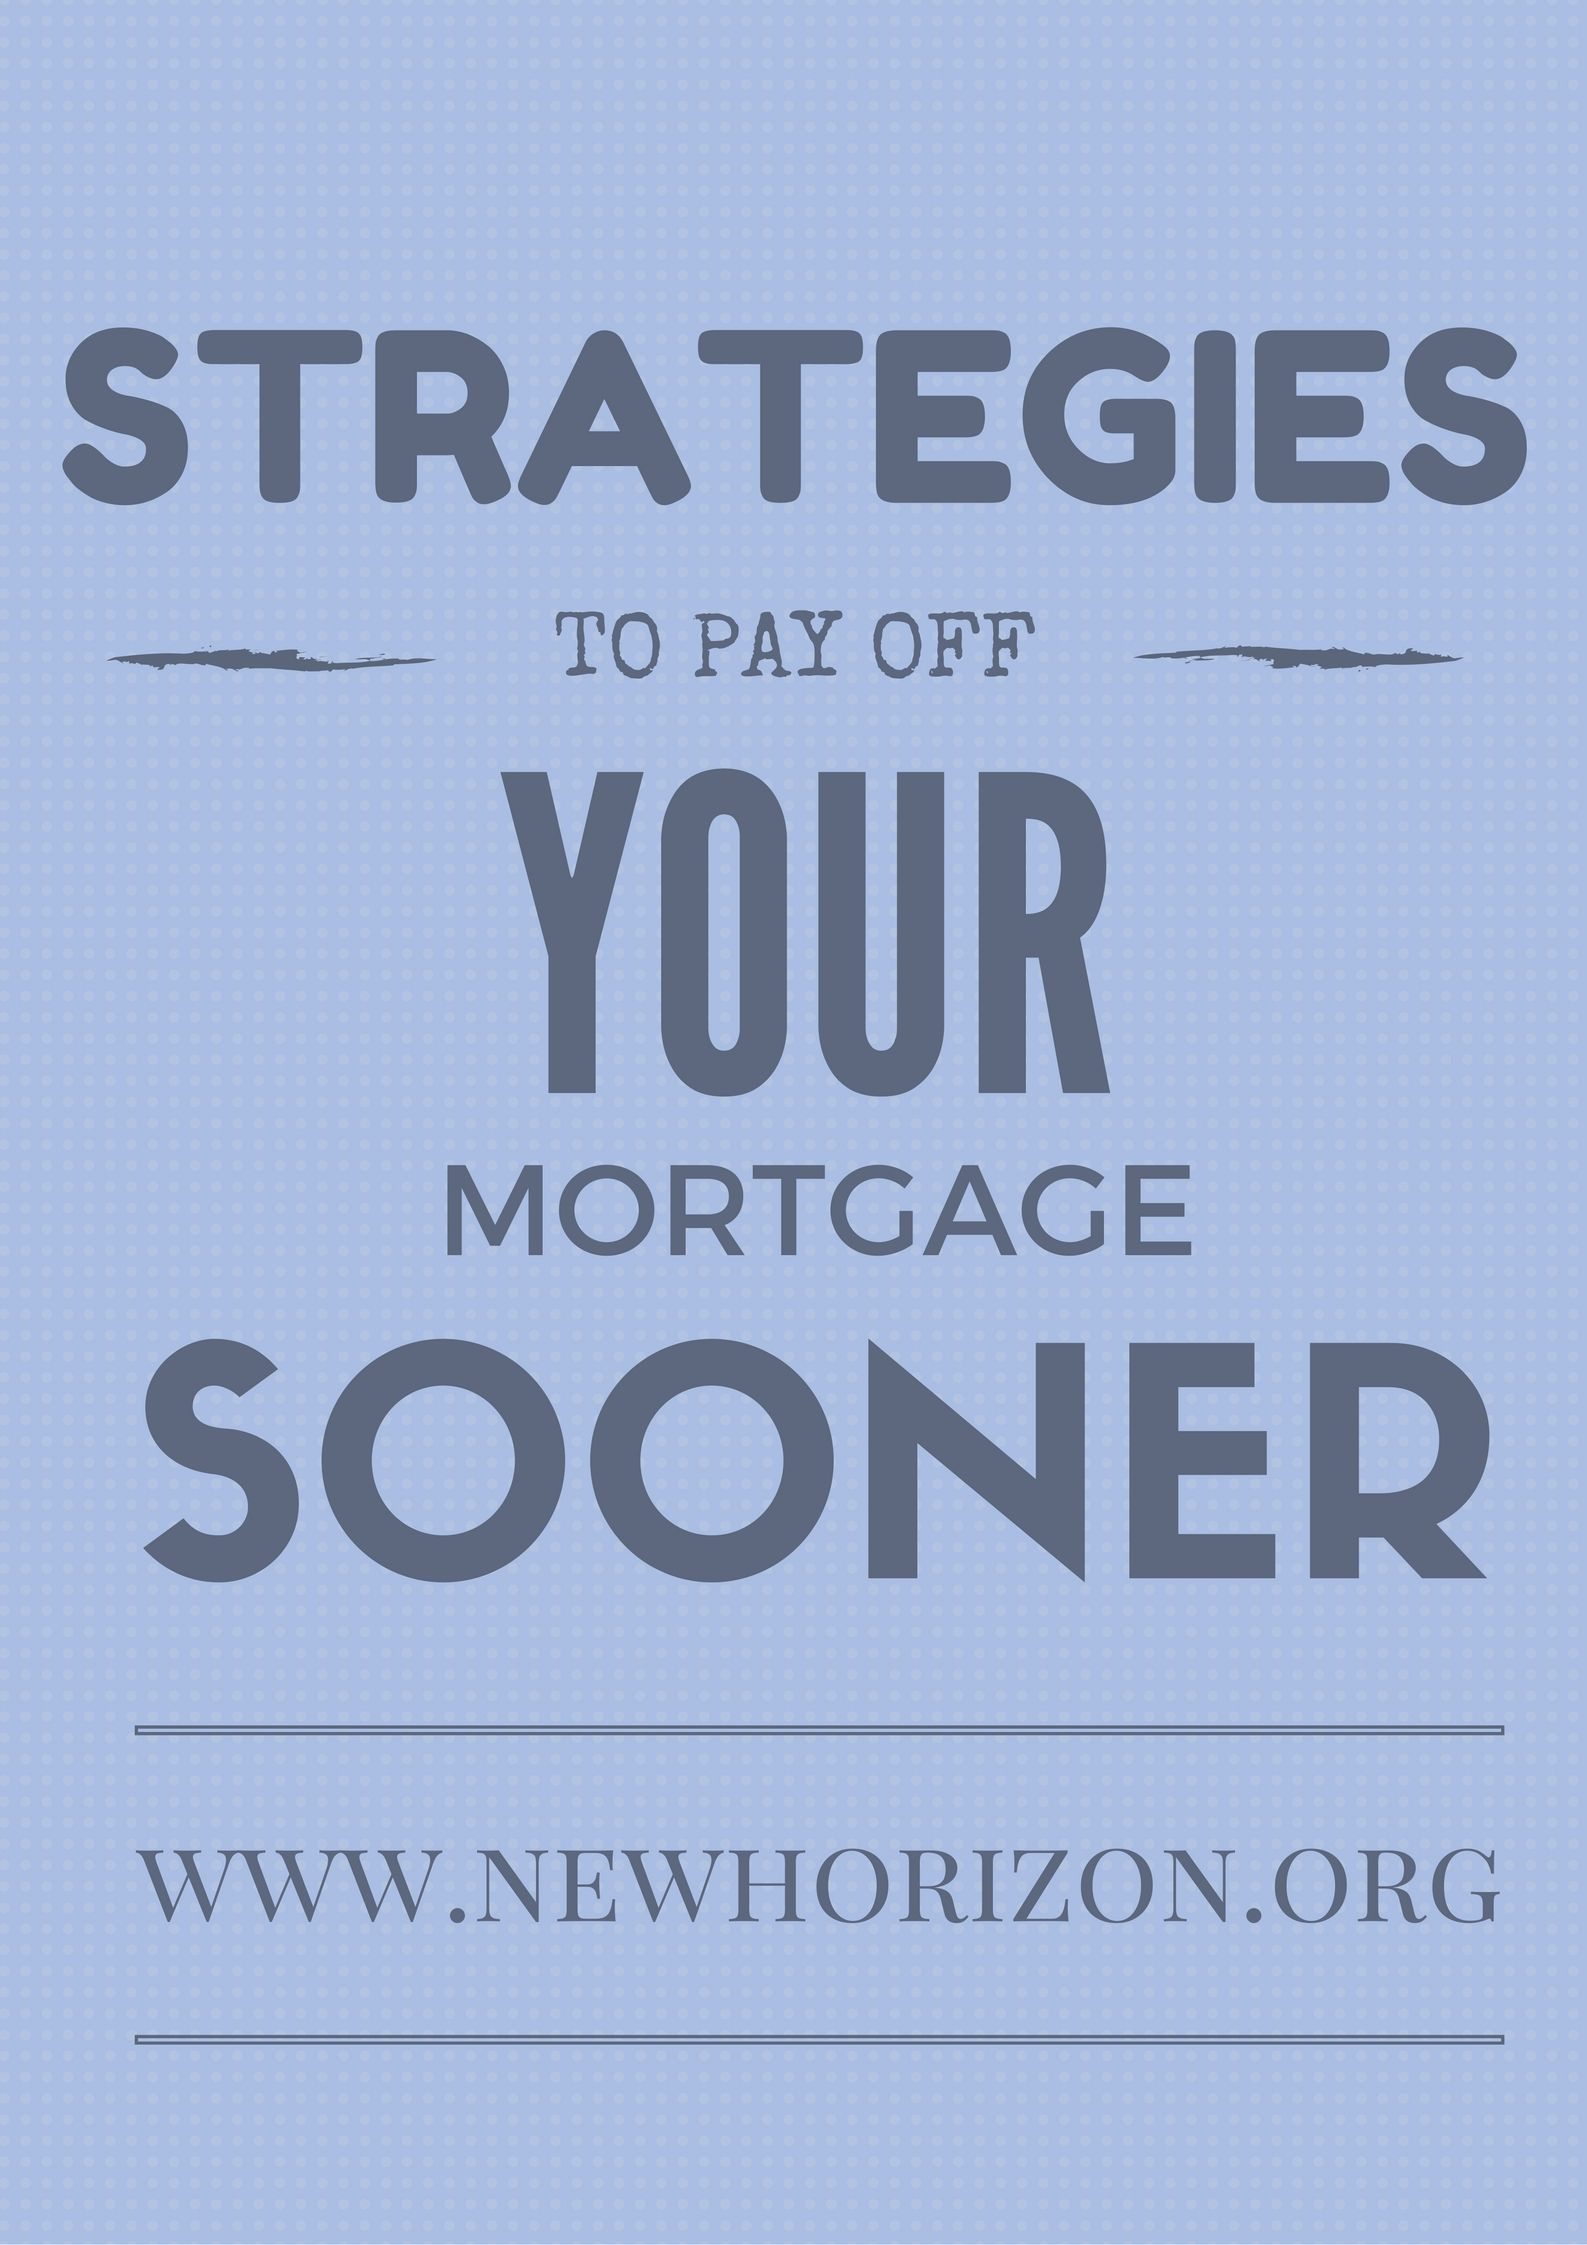 Strategies To Pay Off Your Mortgage Sooner